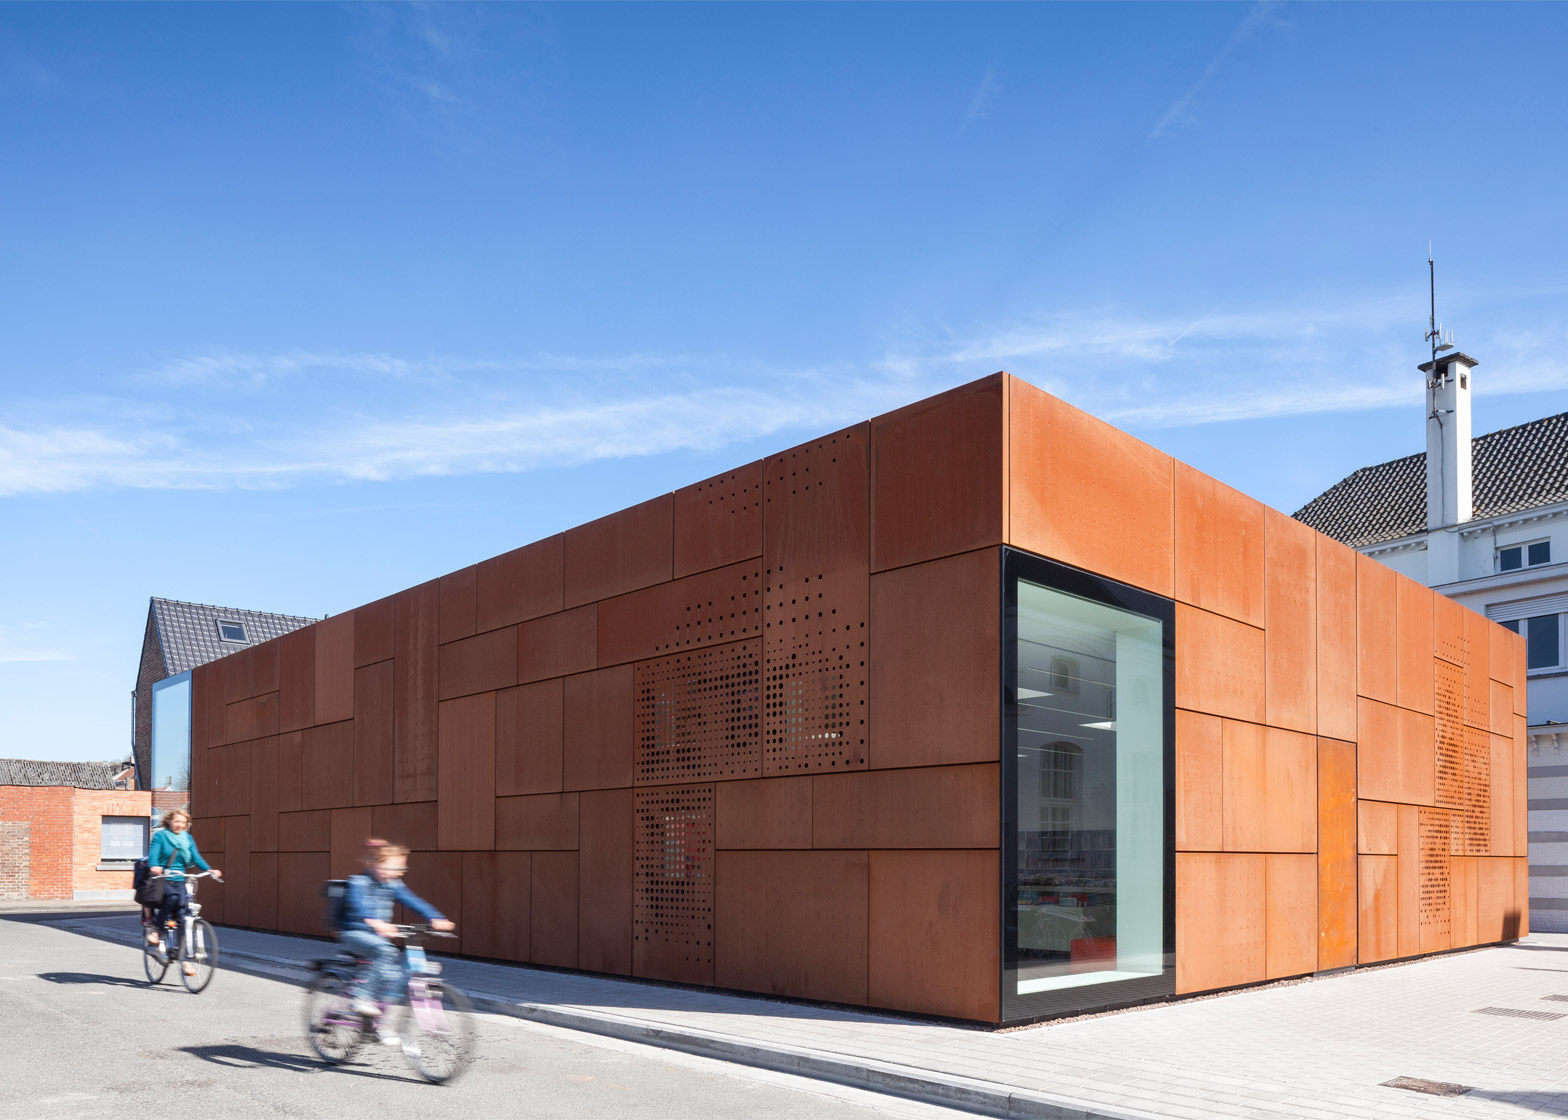 City Library, Bruges, Belgium, by Studio Farris Architects